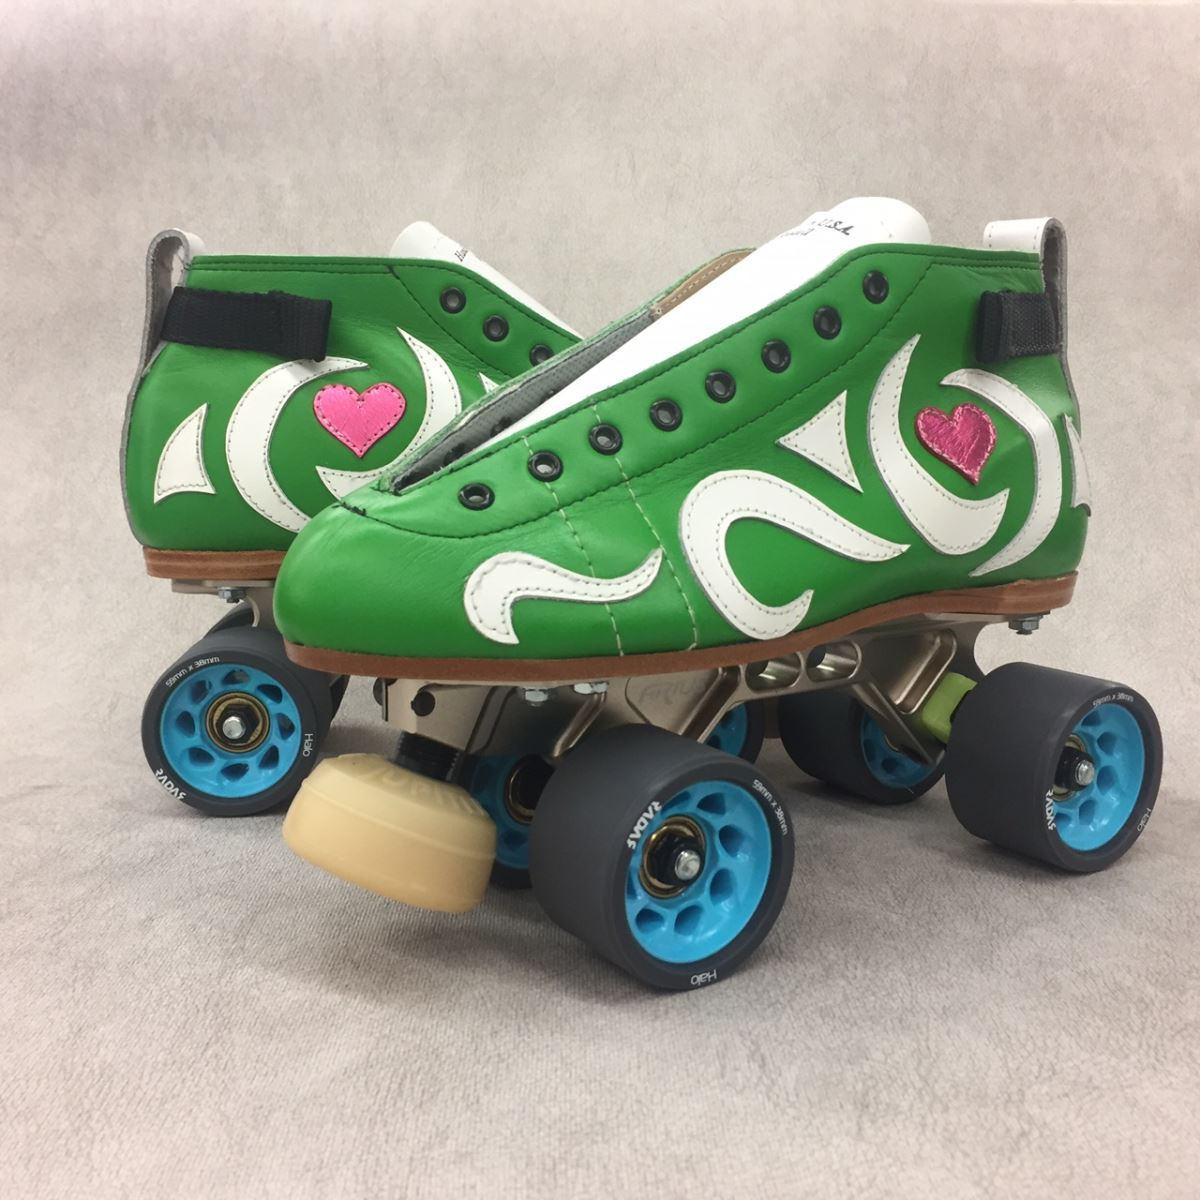 Hurricane Heather's Custom 395 Skates - Green Leather with custom graphics